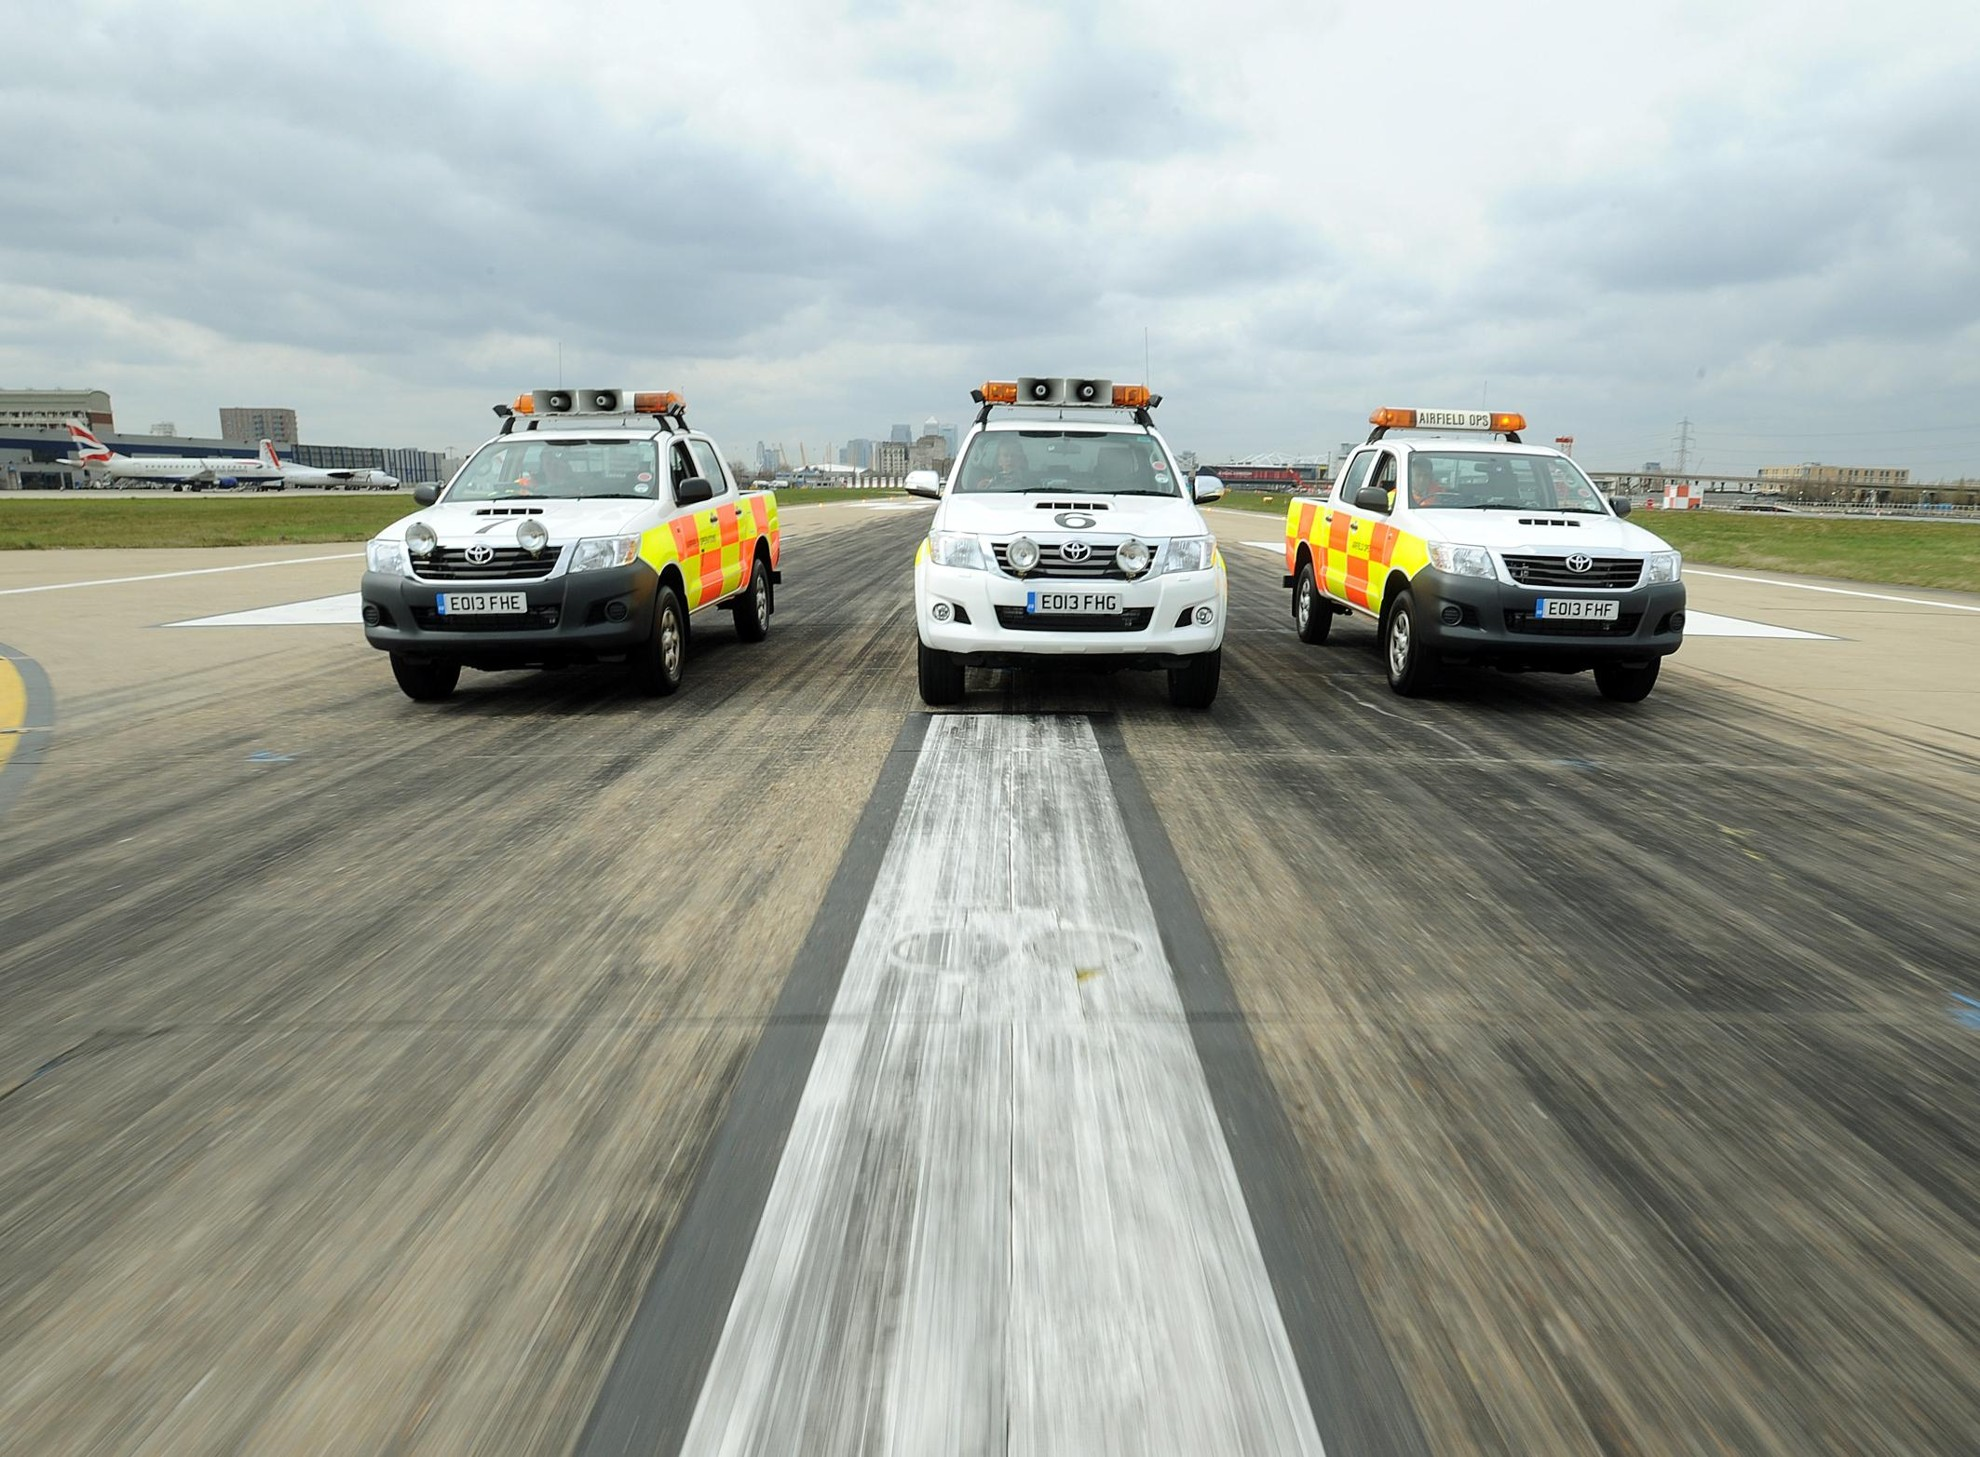 TOYOTA HILUX – LONDON CITY AIRPORT